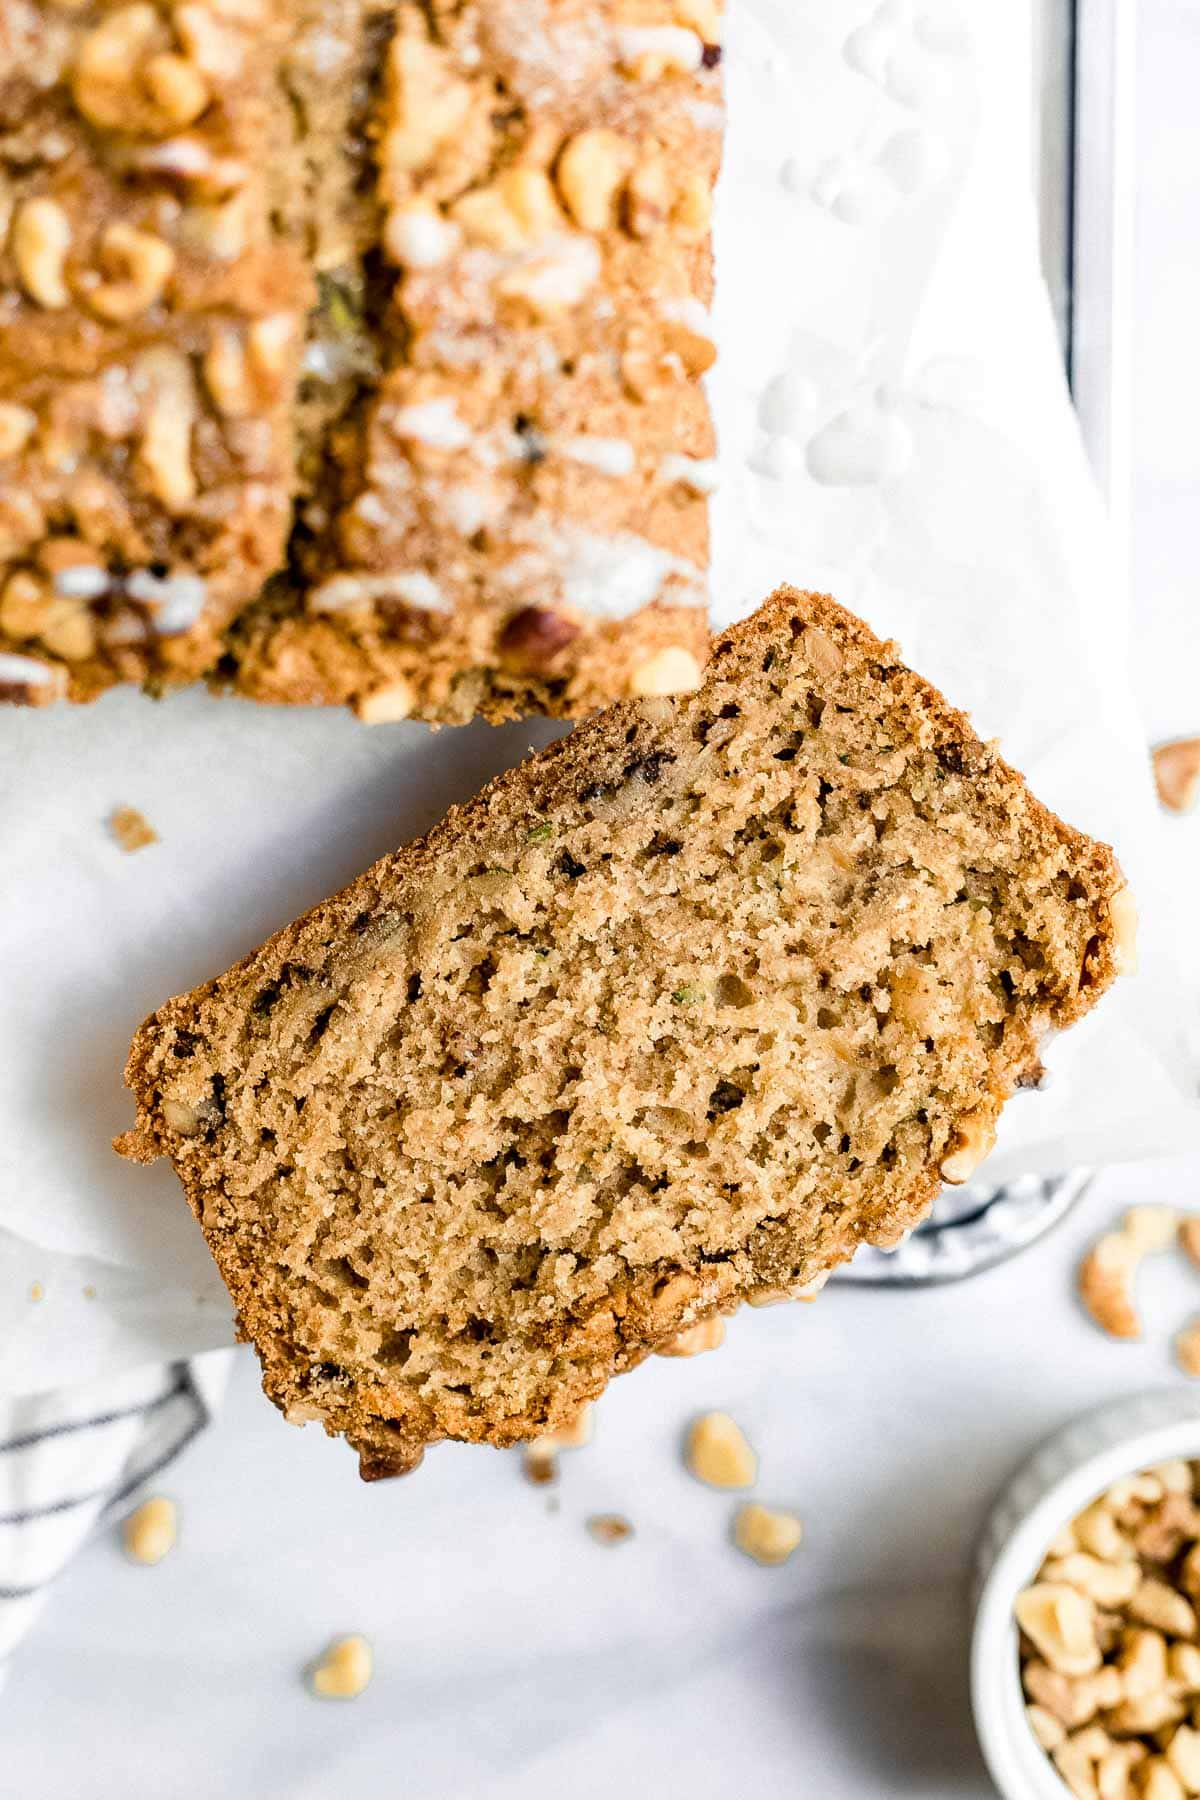 Up close image of the zucchini bread with one slice on the side to show texture.